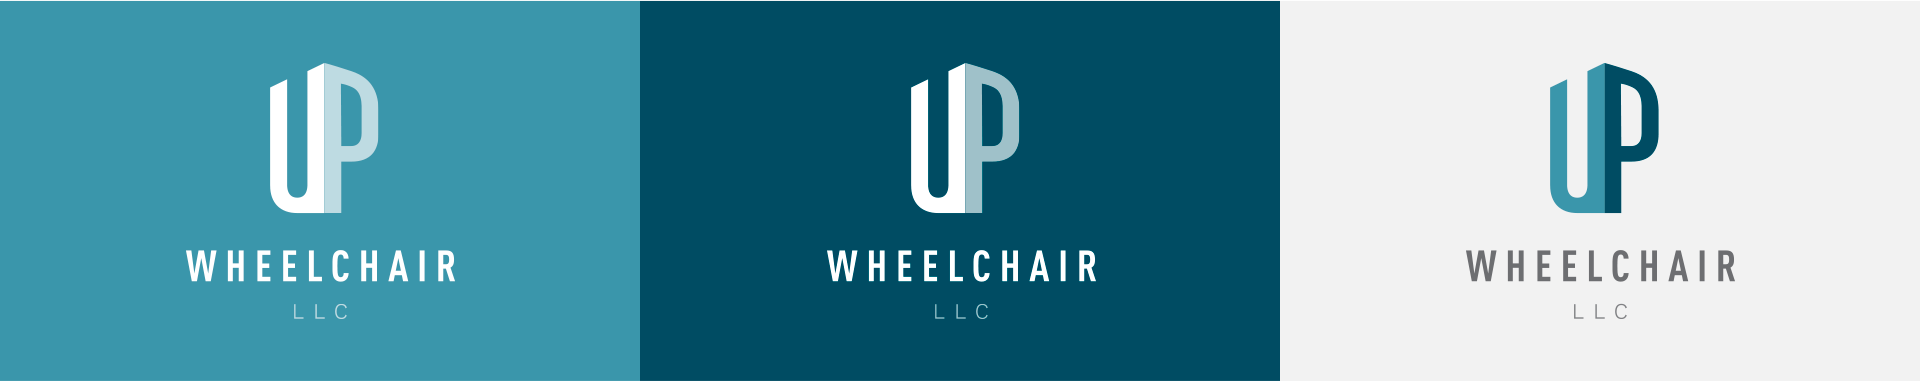 Vertical orientation of UP Wheelchair logo on different color backgrounds